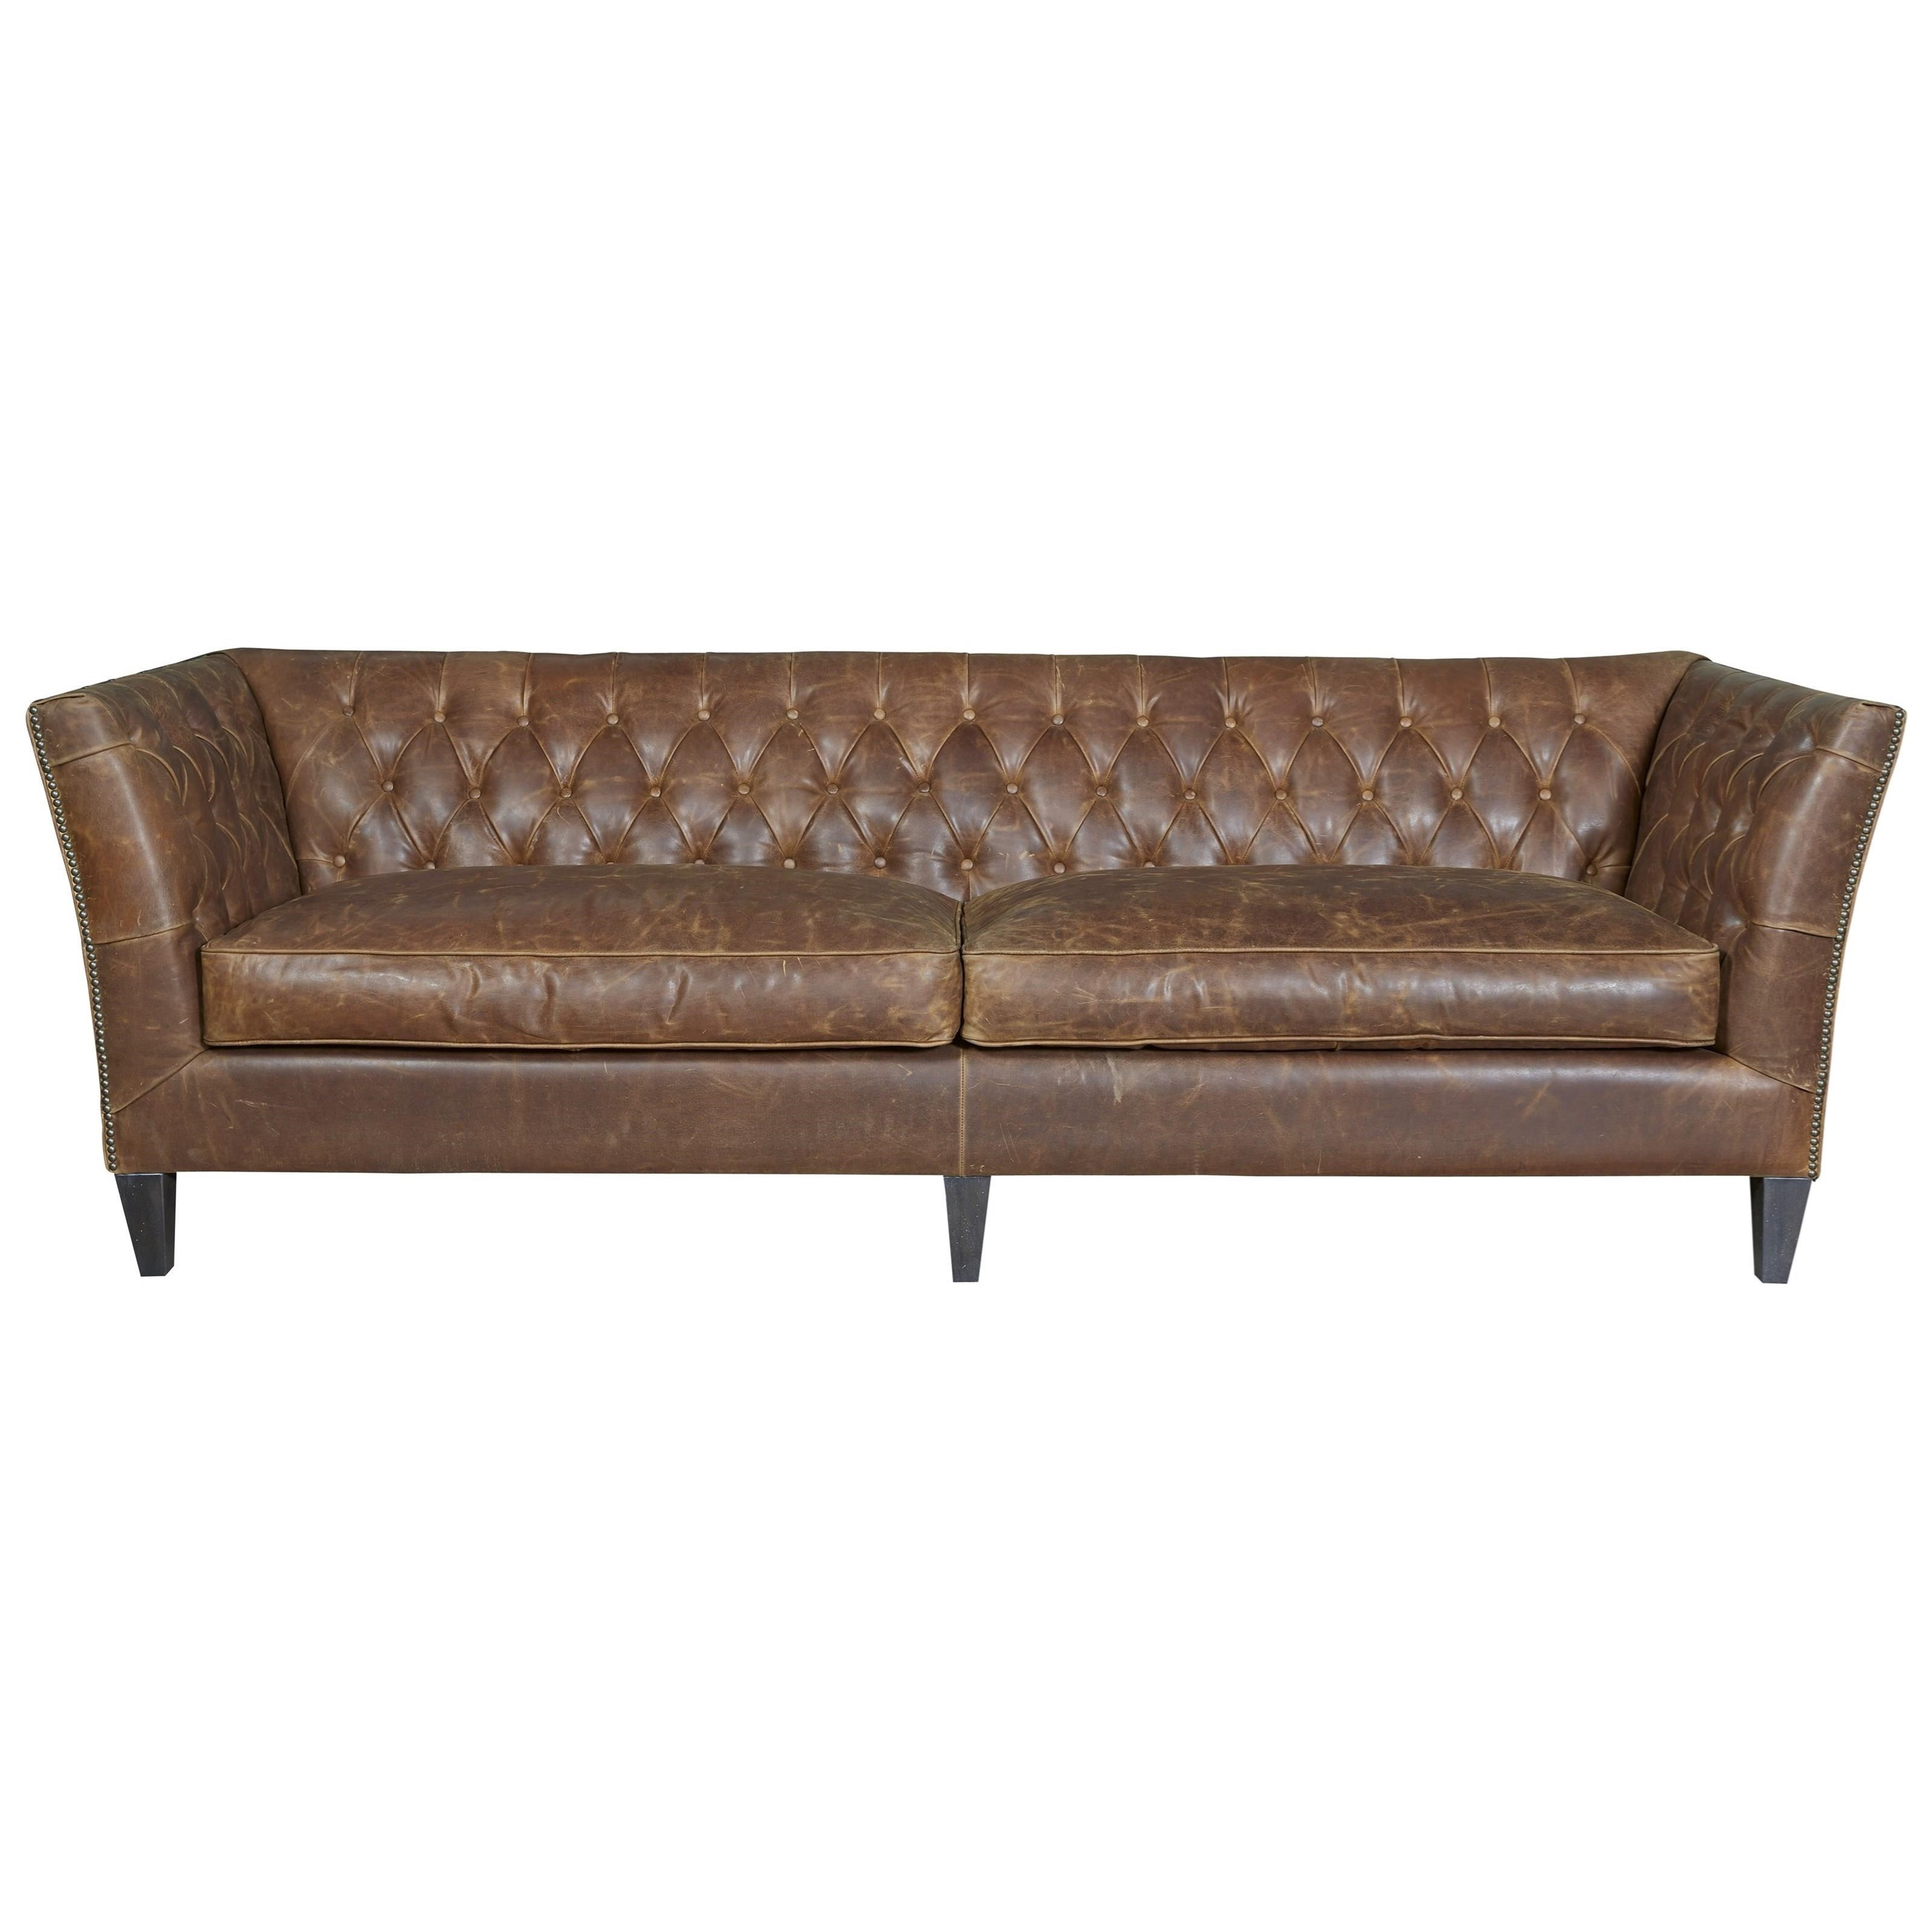 Universal duncan traditional sofa in diamond tufted for Traditional tufted leather sofa